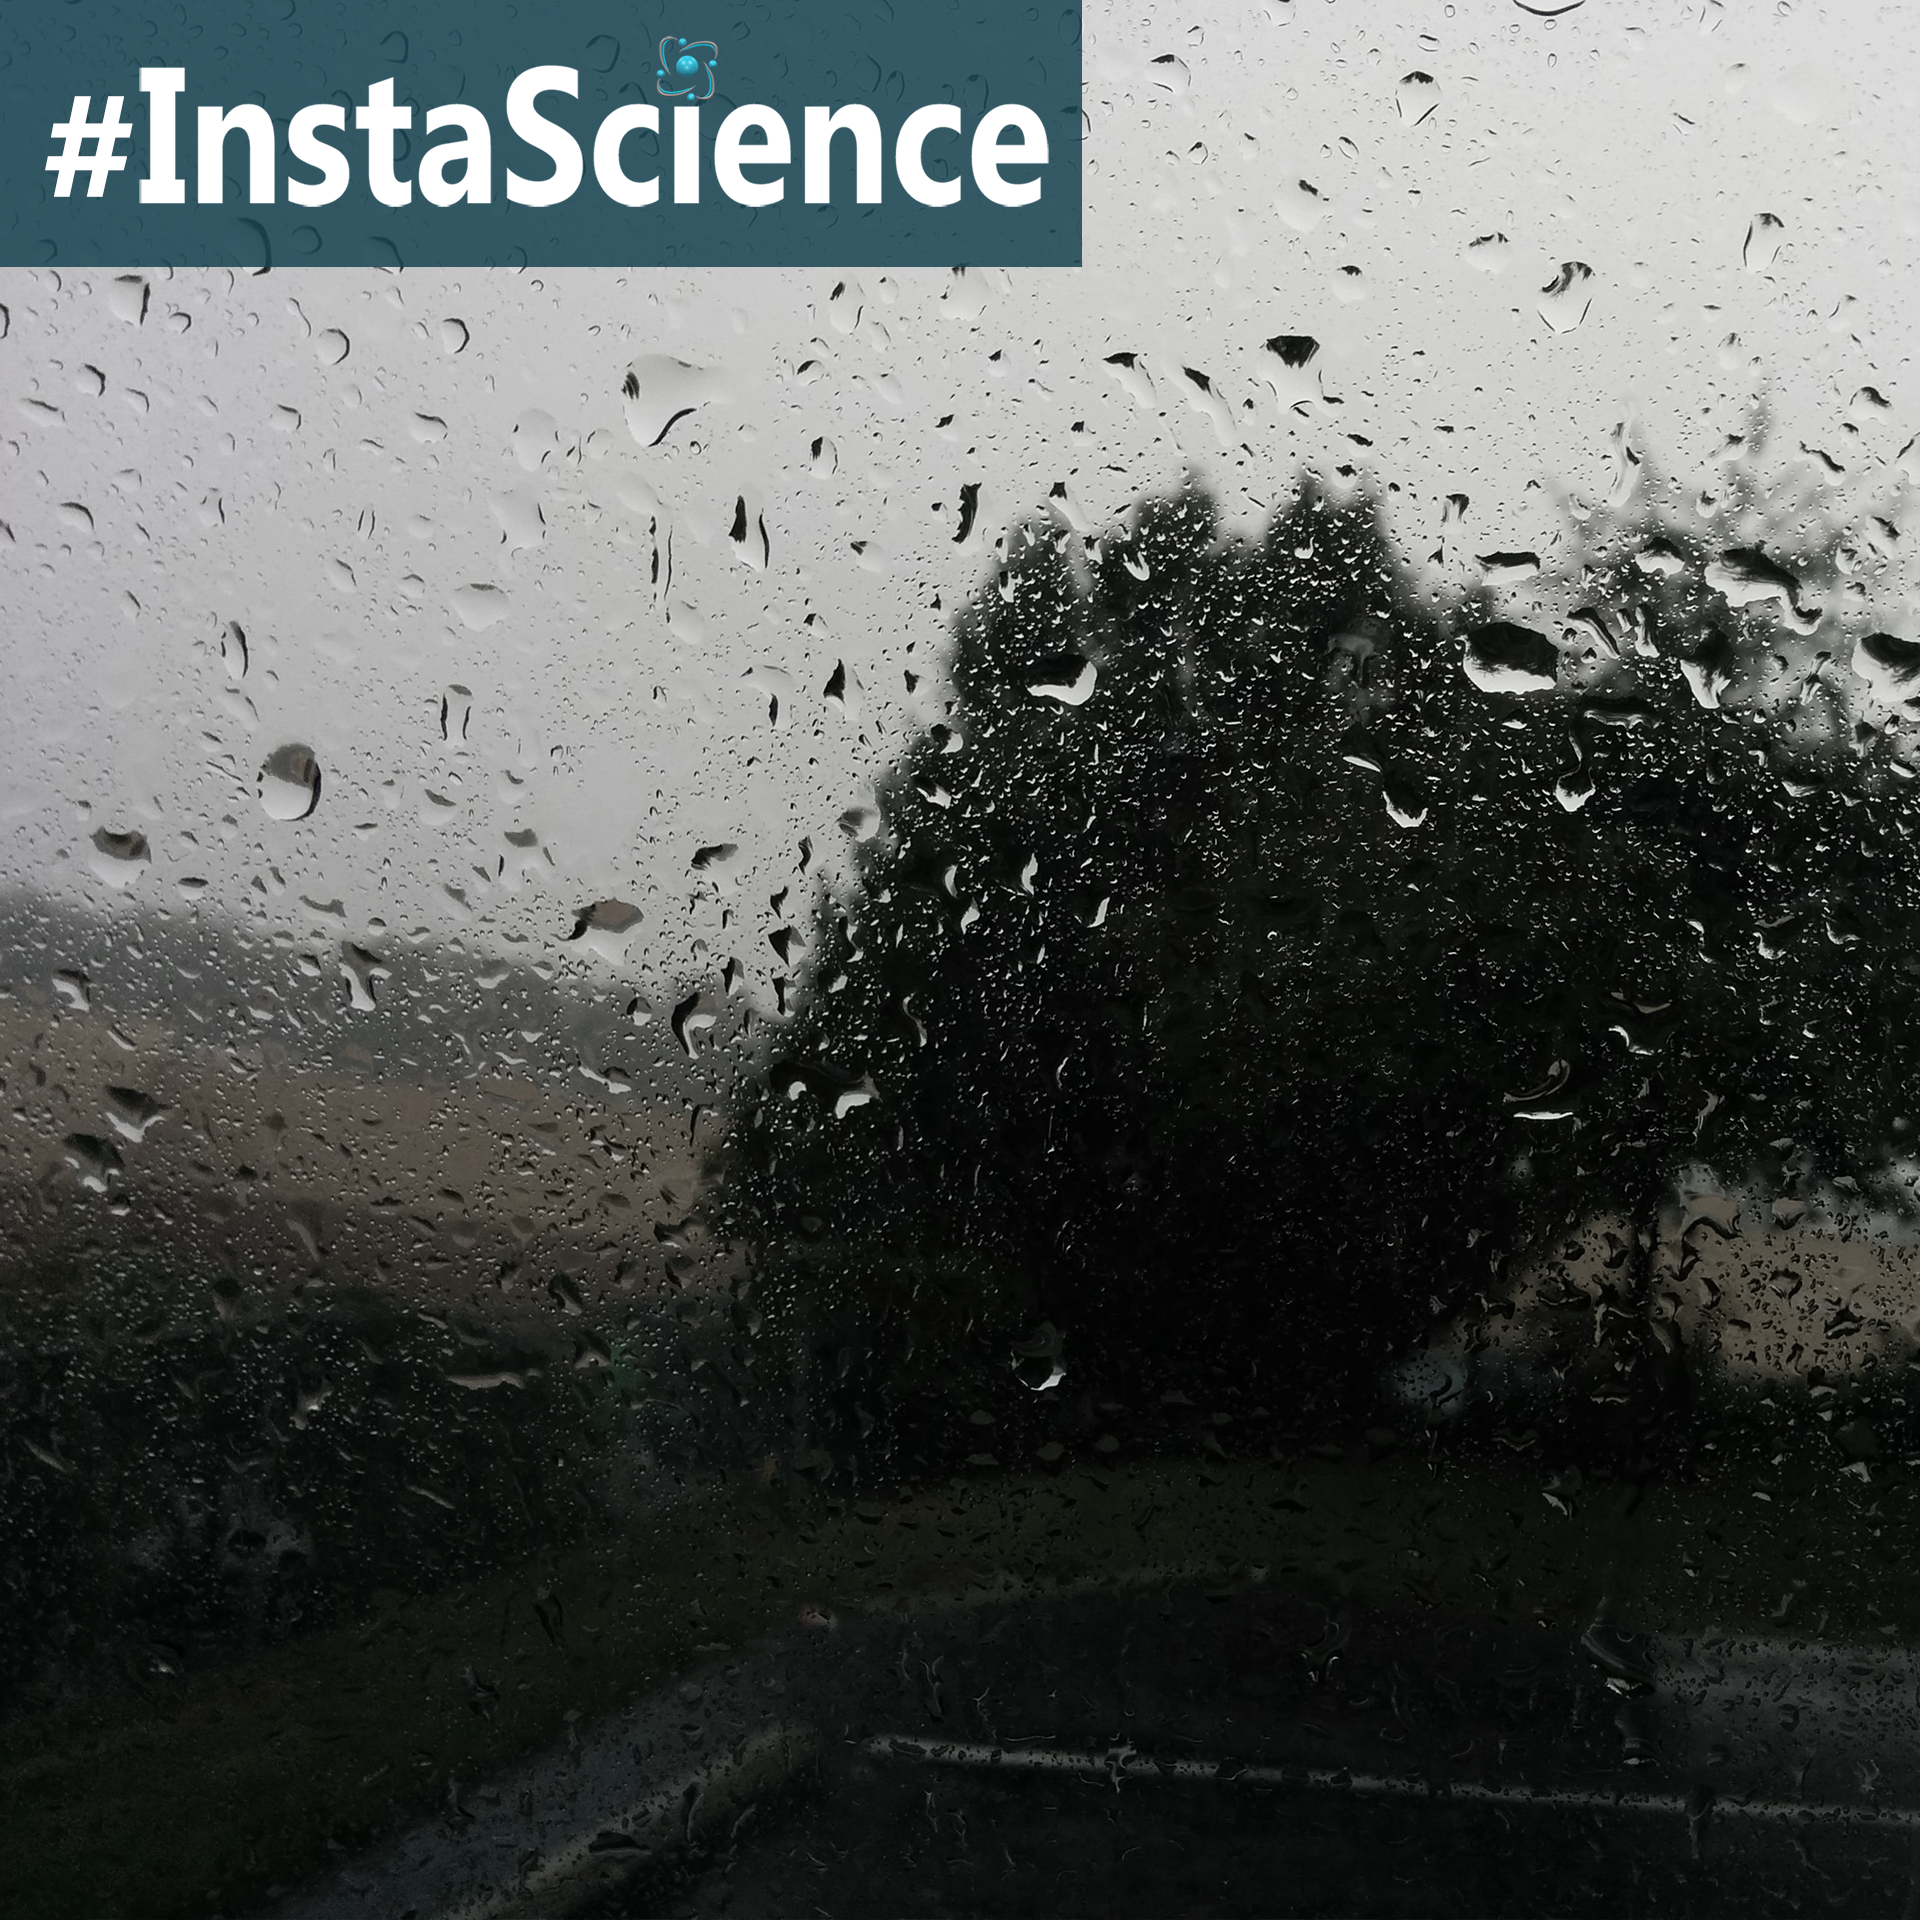 Learn about rain in an instant with these facts and activities!